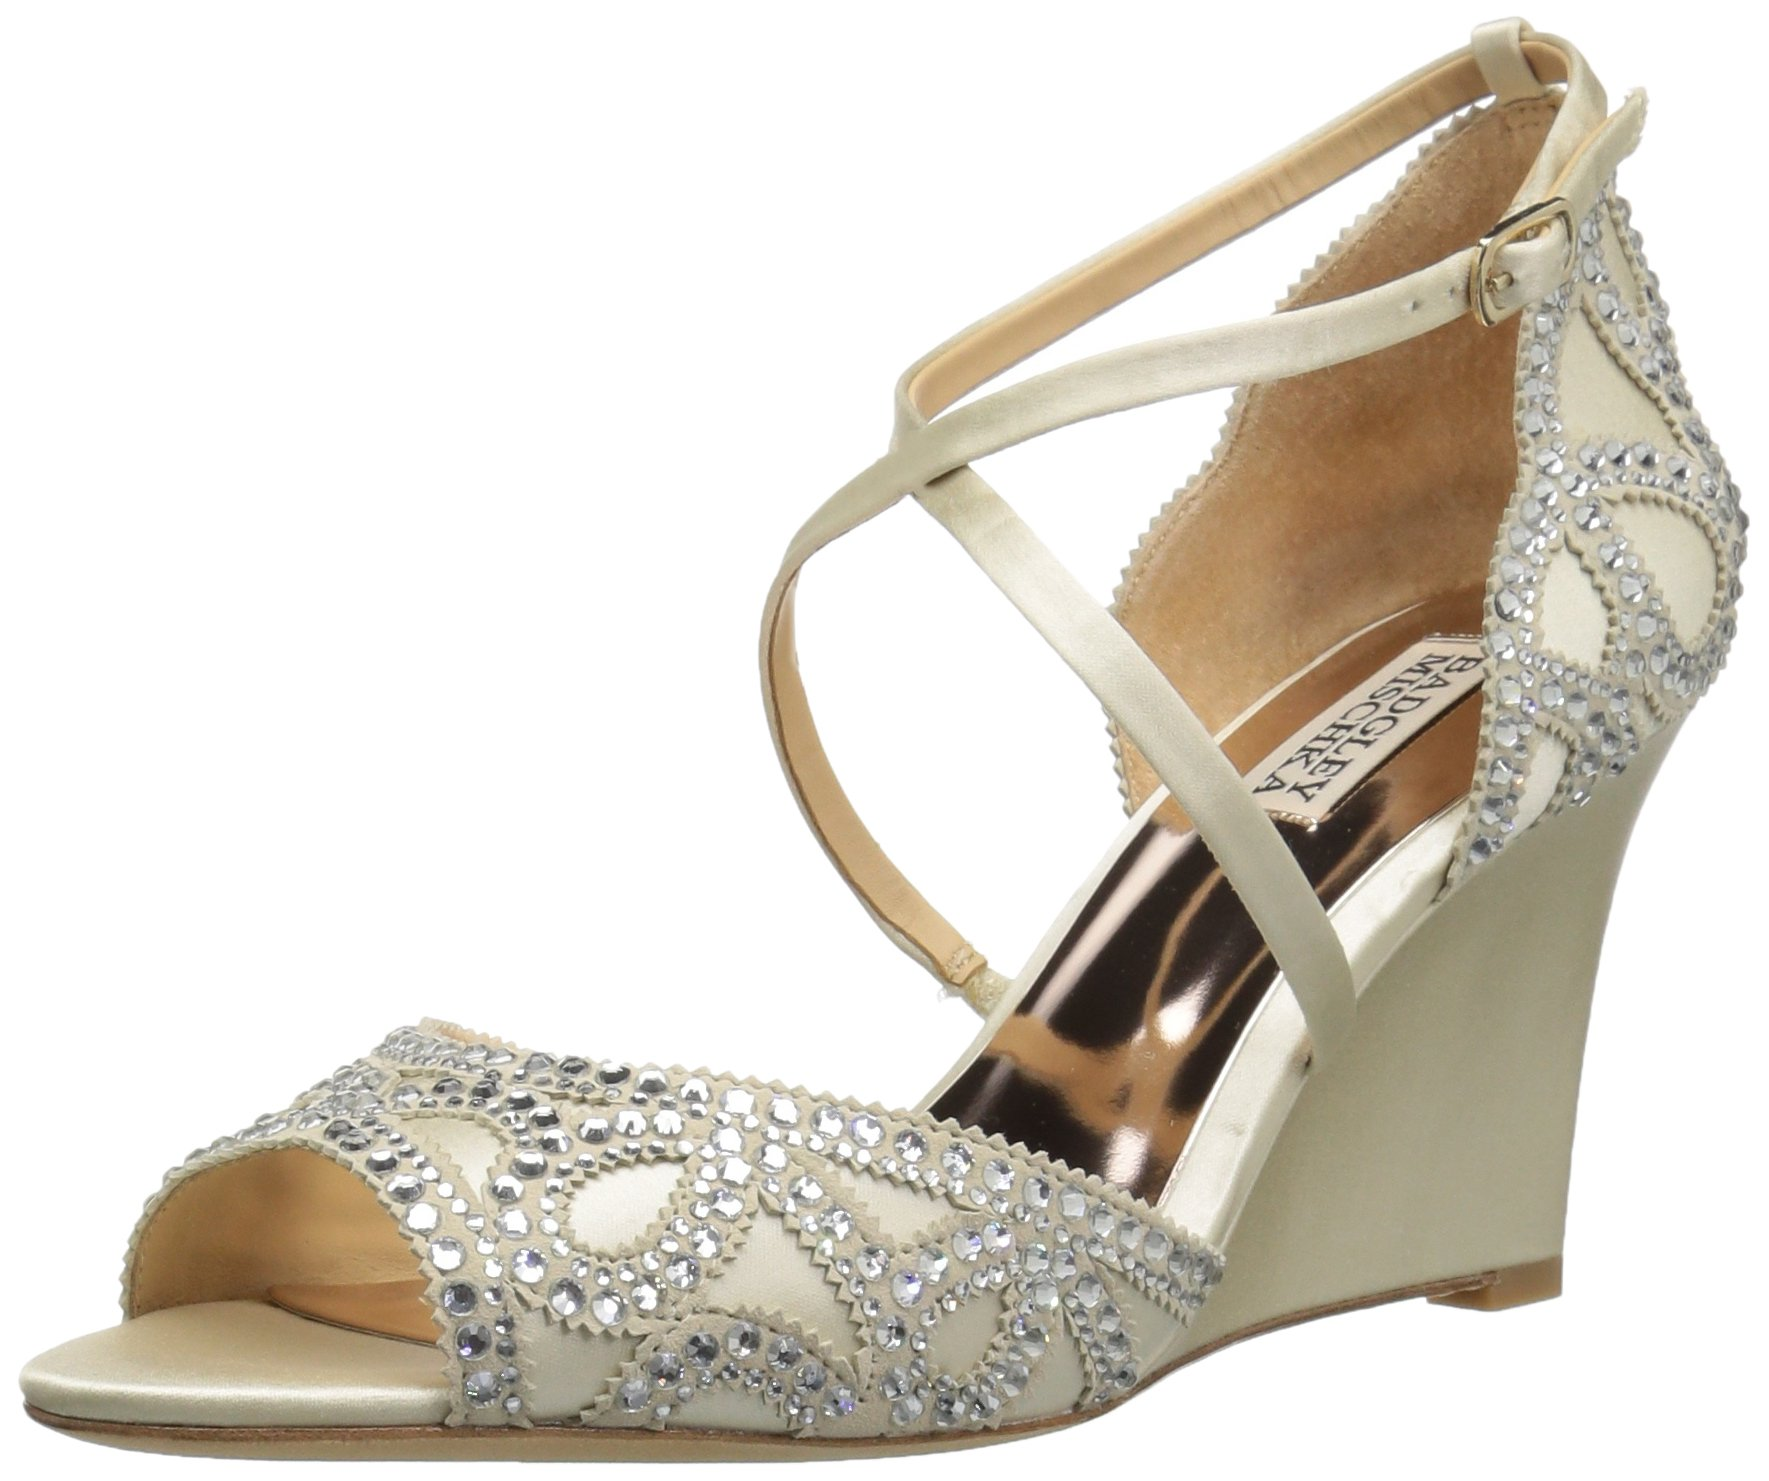 Badgley Mischka Women's Winter Wedge Sandal, Ivory, 7 M US